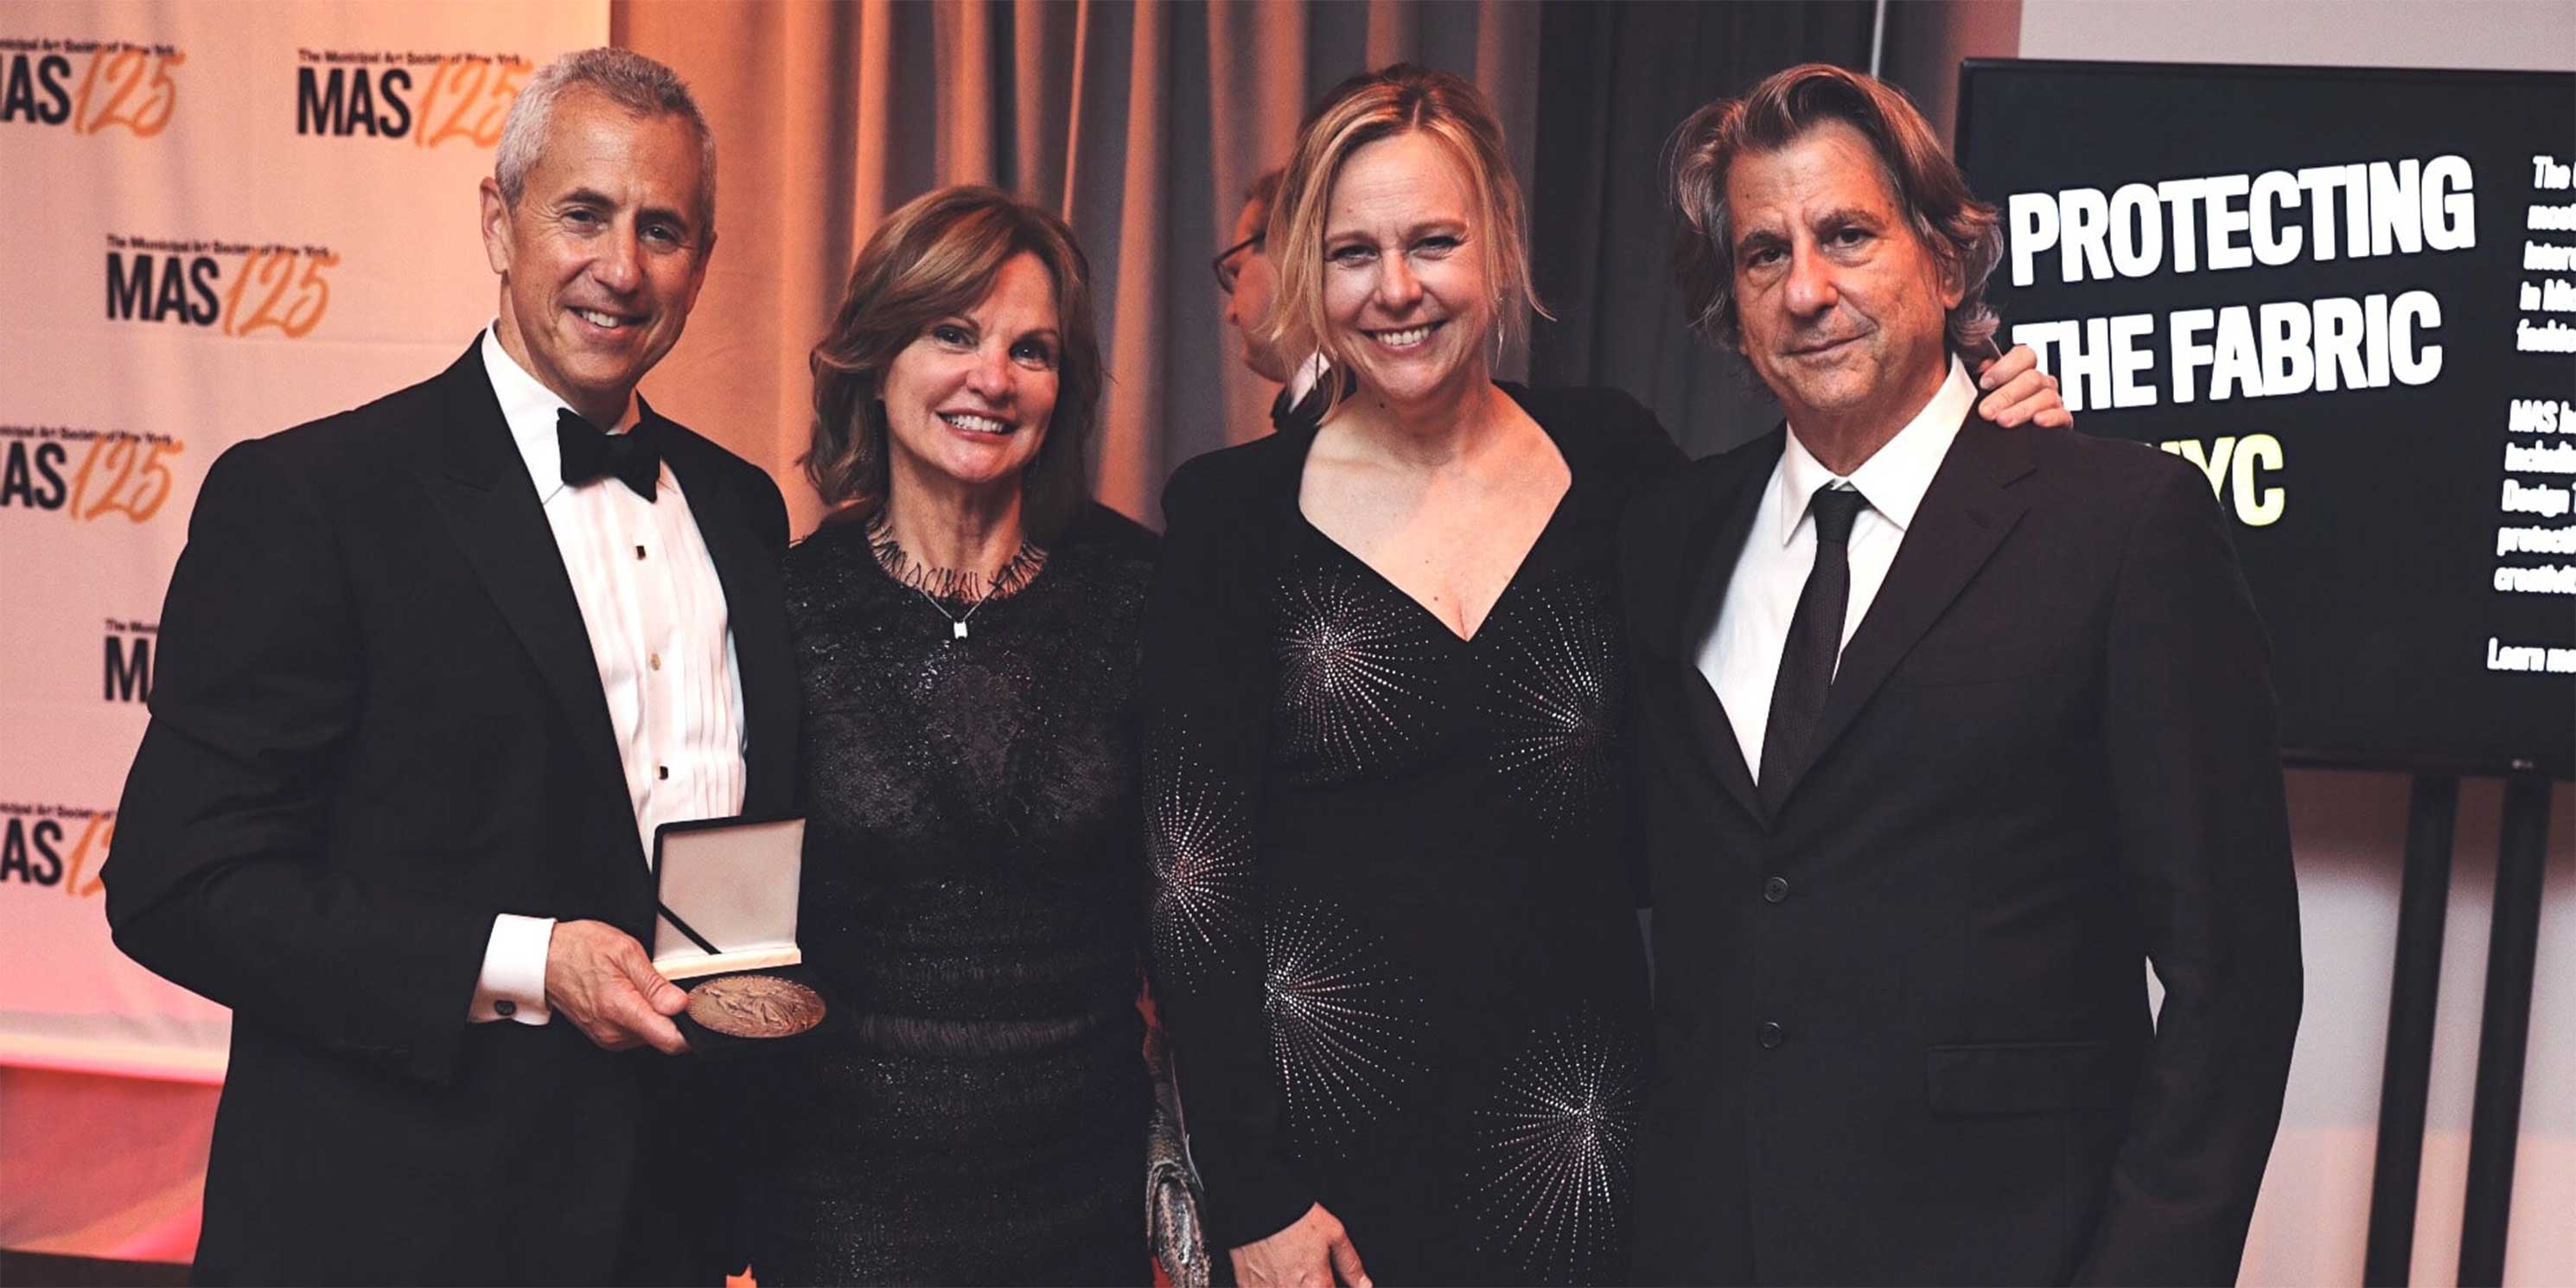 Audrey and Danny Meyer, Christy MacLear, and David Rockwell at the 2018 Gala